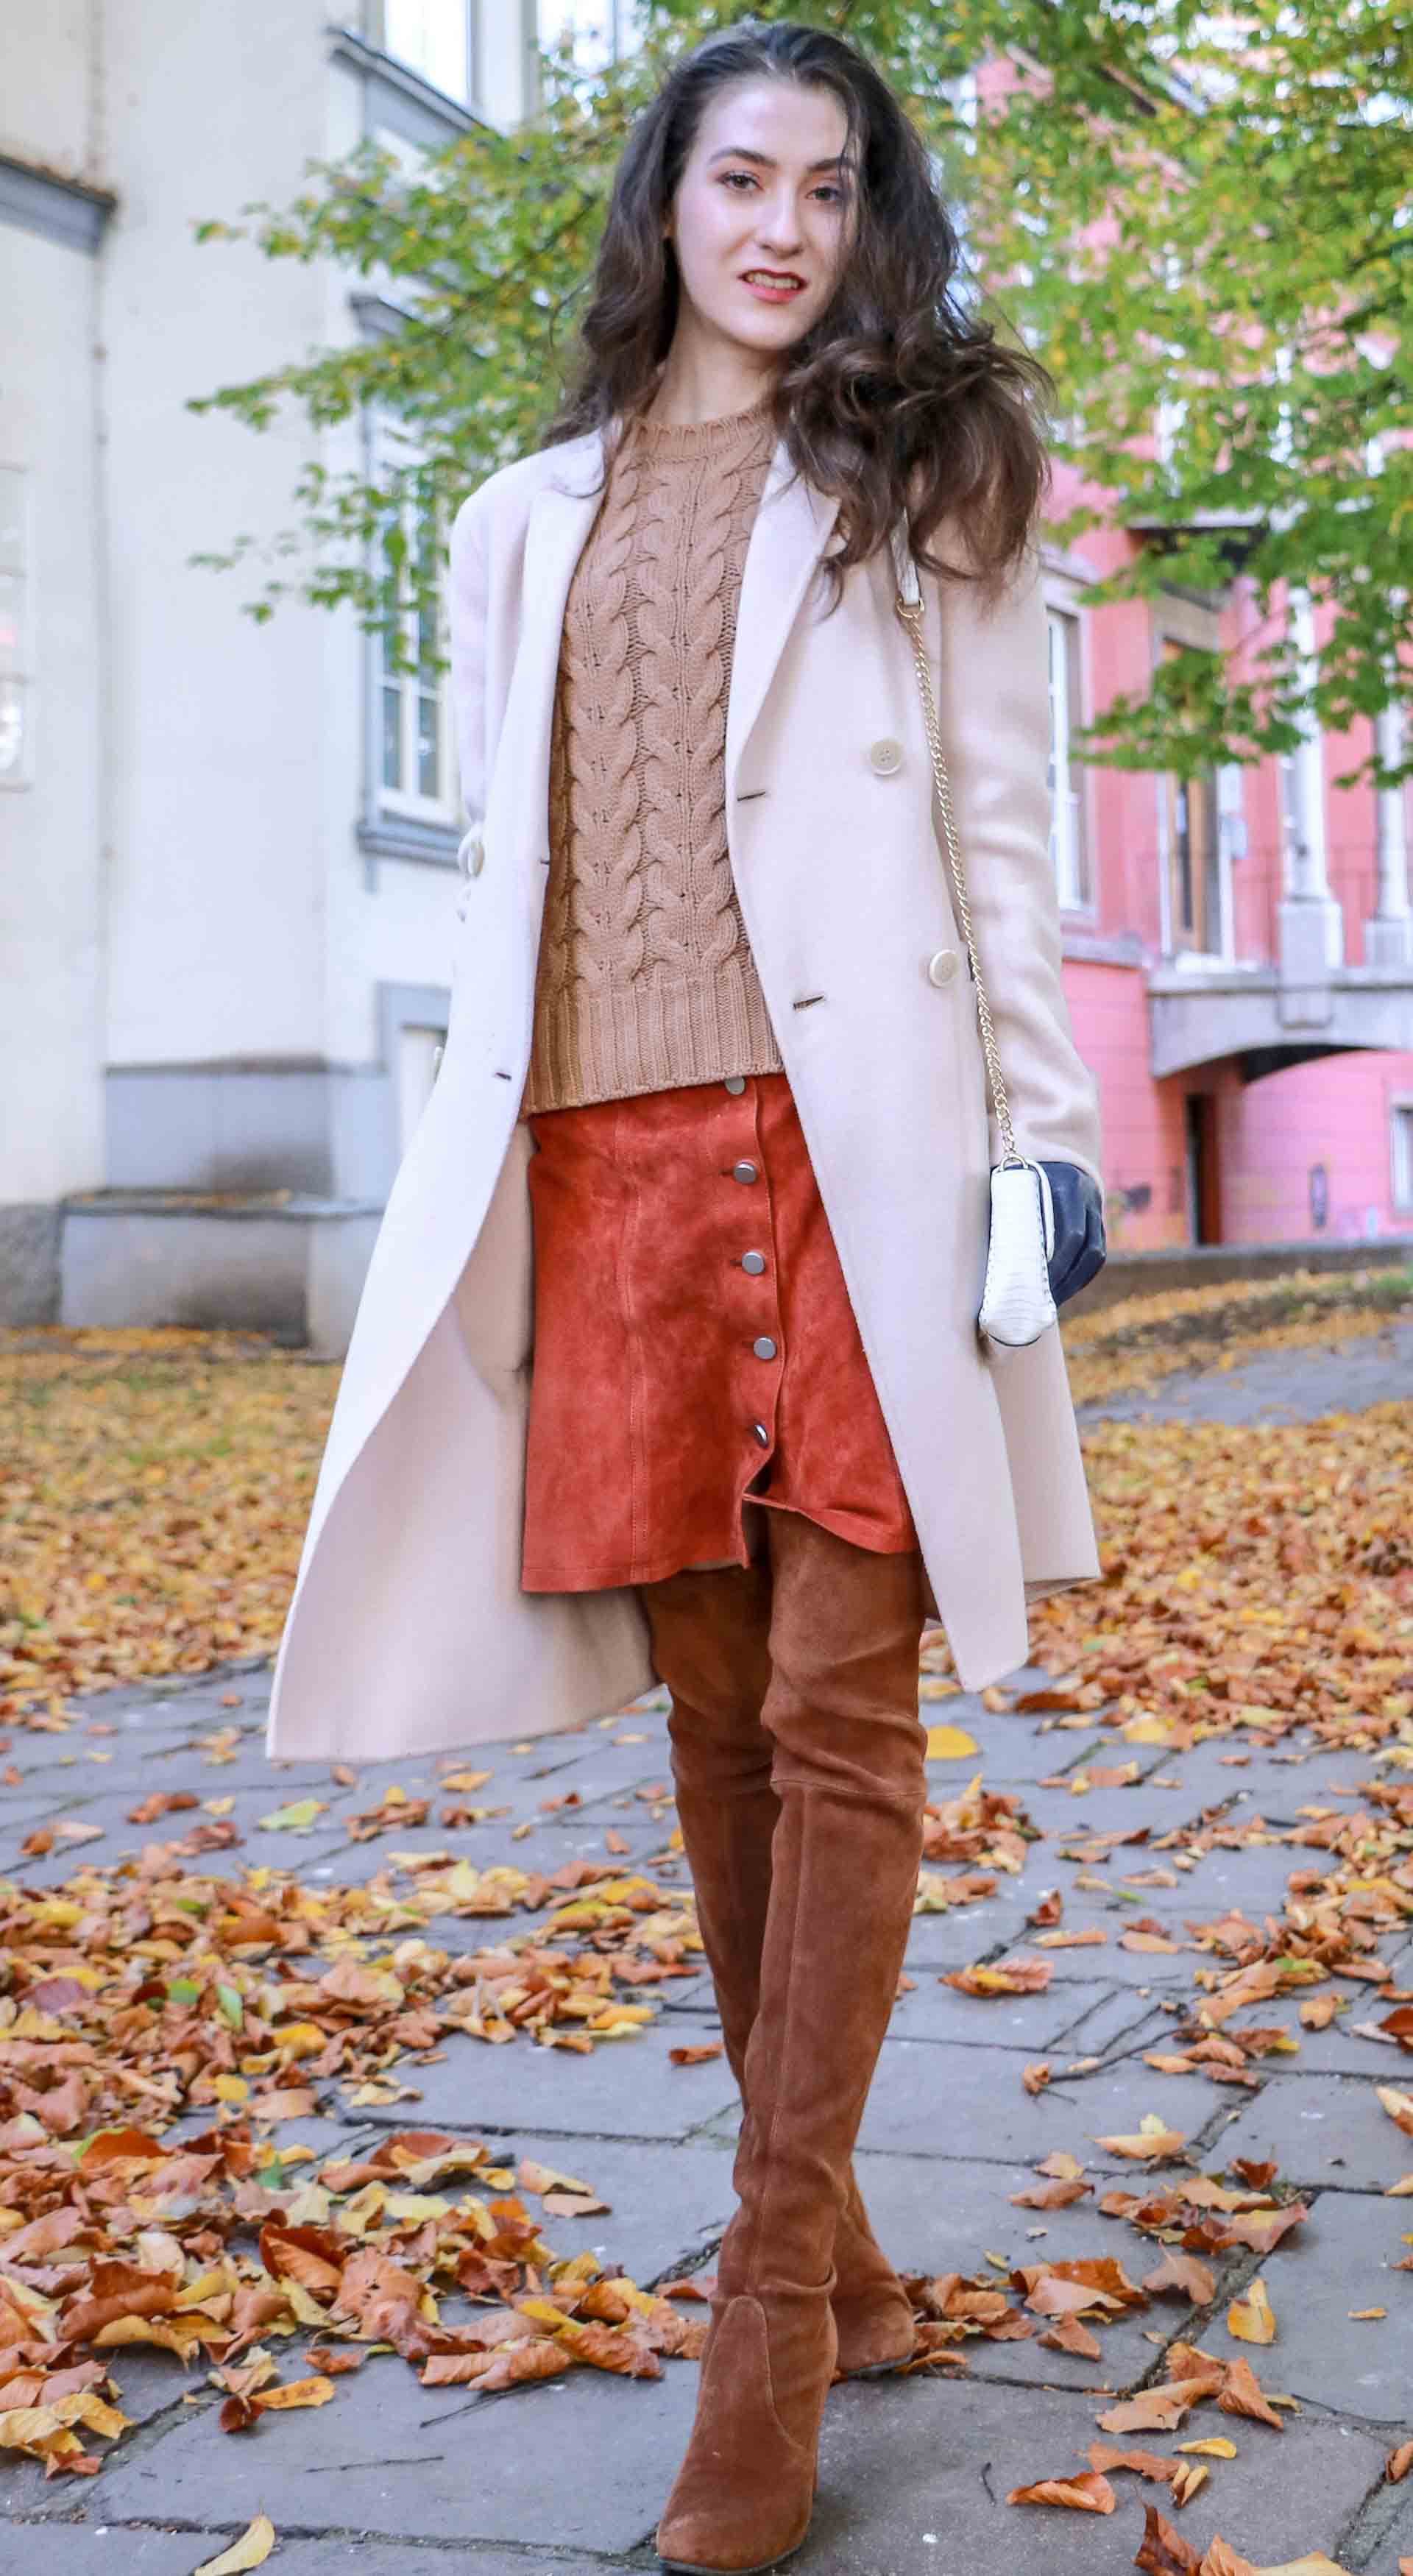 Beautiful Slovenian Fashion Blogger Veronika Lipar of Brunette from Wall dressed in Max Mara camel cable knit sweater, front button brown suede skirt, Stuart Weitzman brown over the knee boots, Max Mara coat in autumn